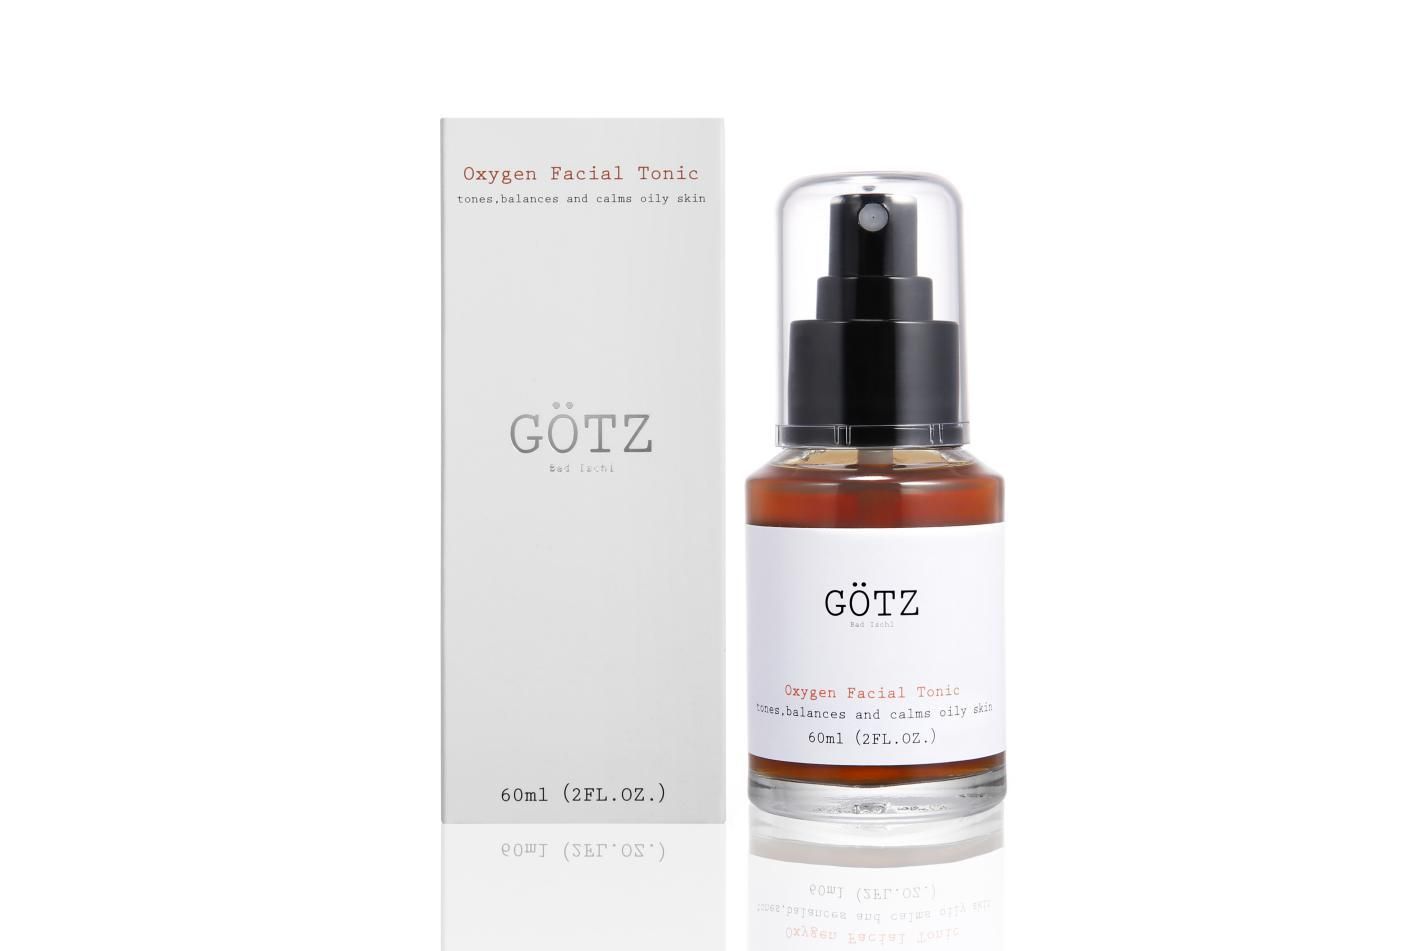 Oxygen Facial Tonic by Götz Bad Ischl will make your skin smooth